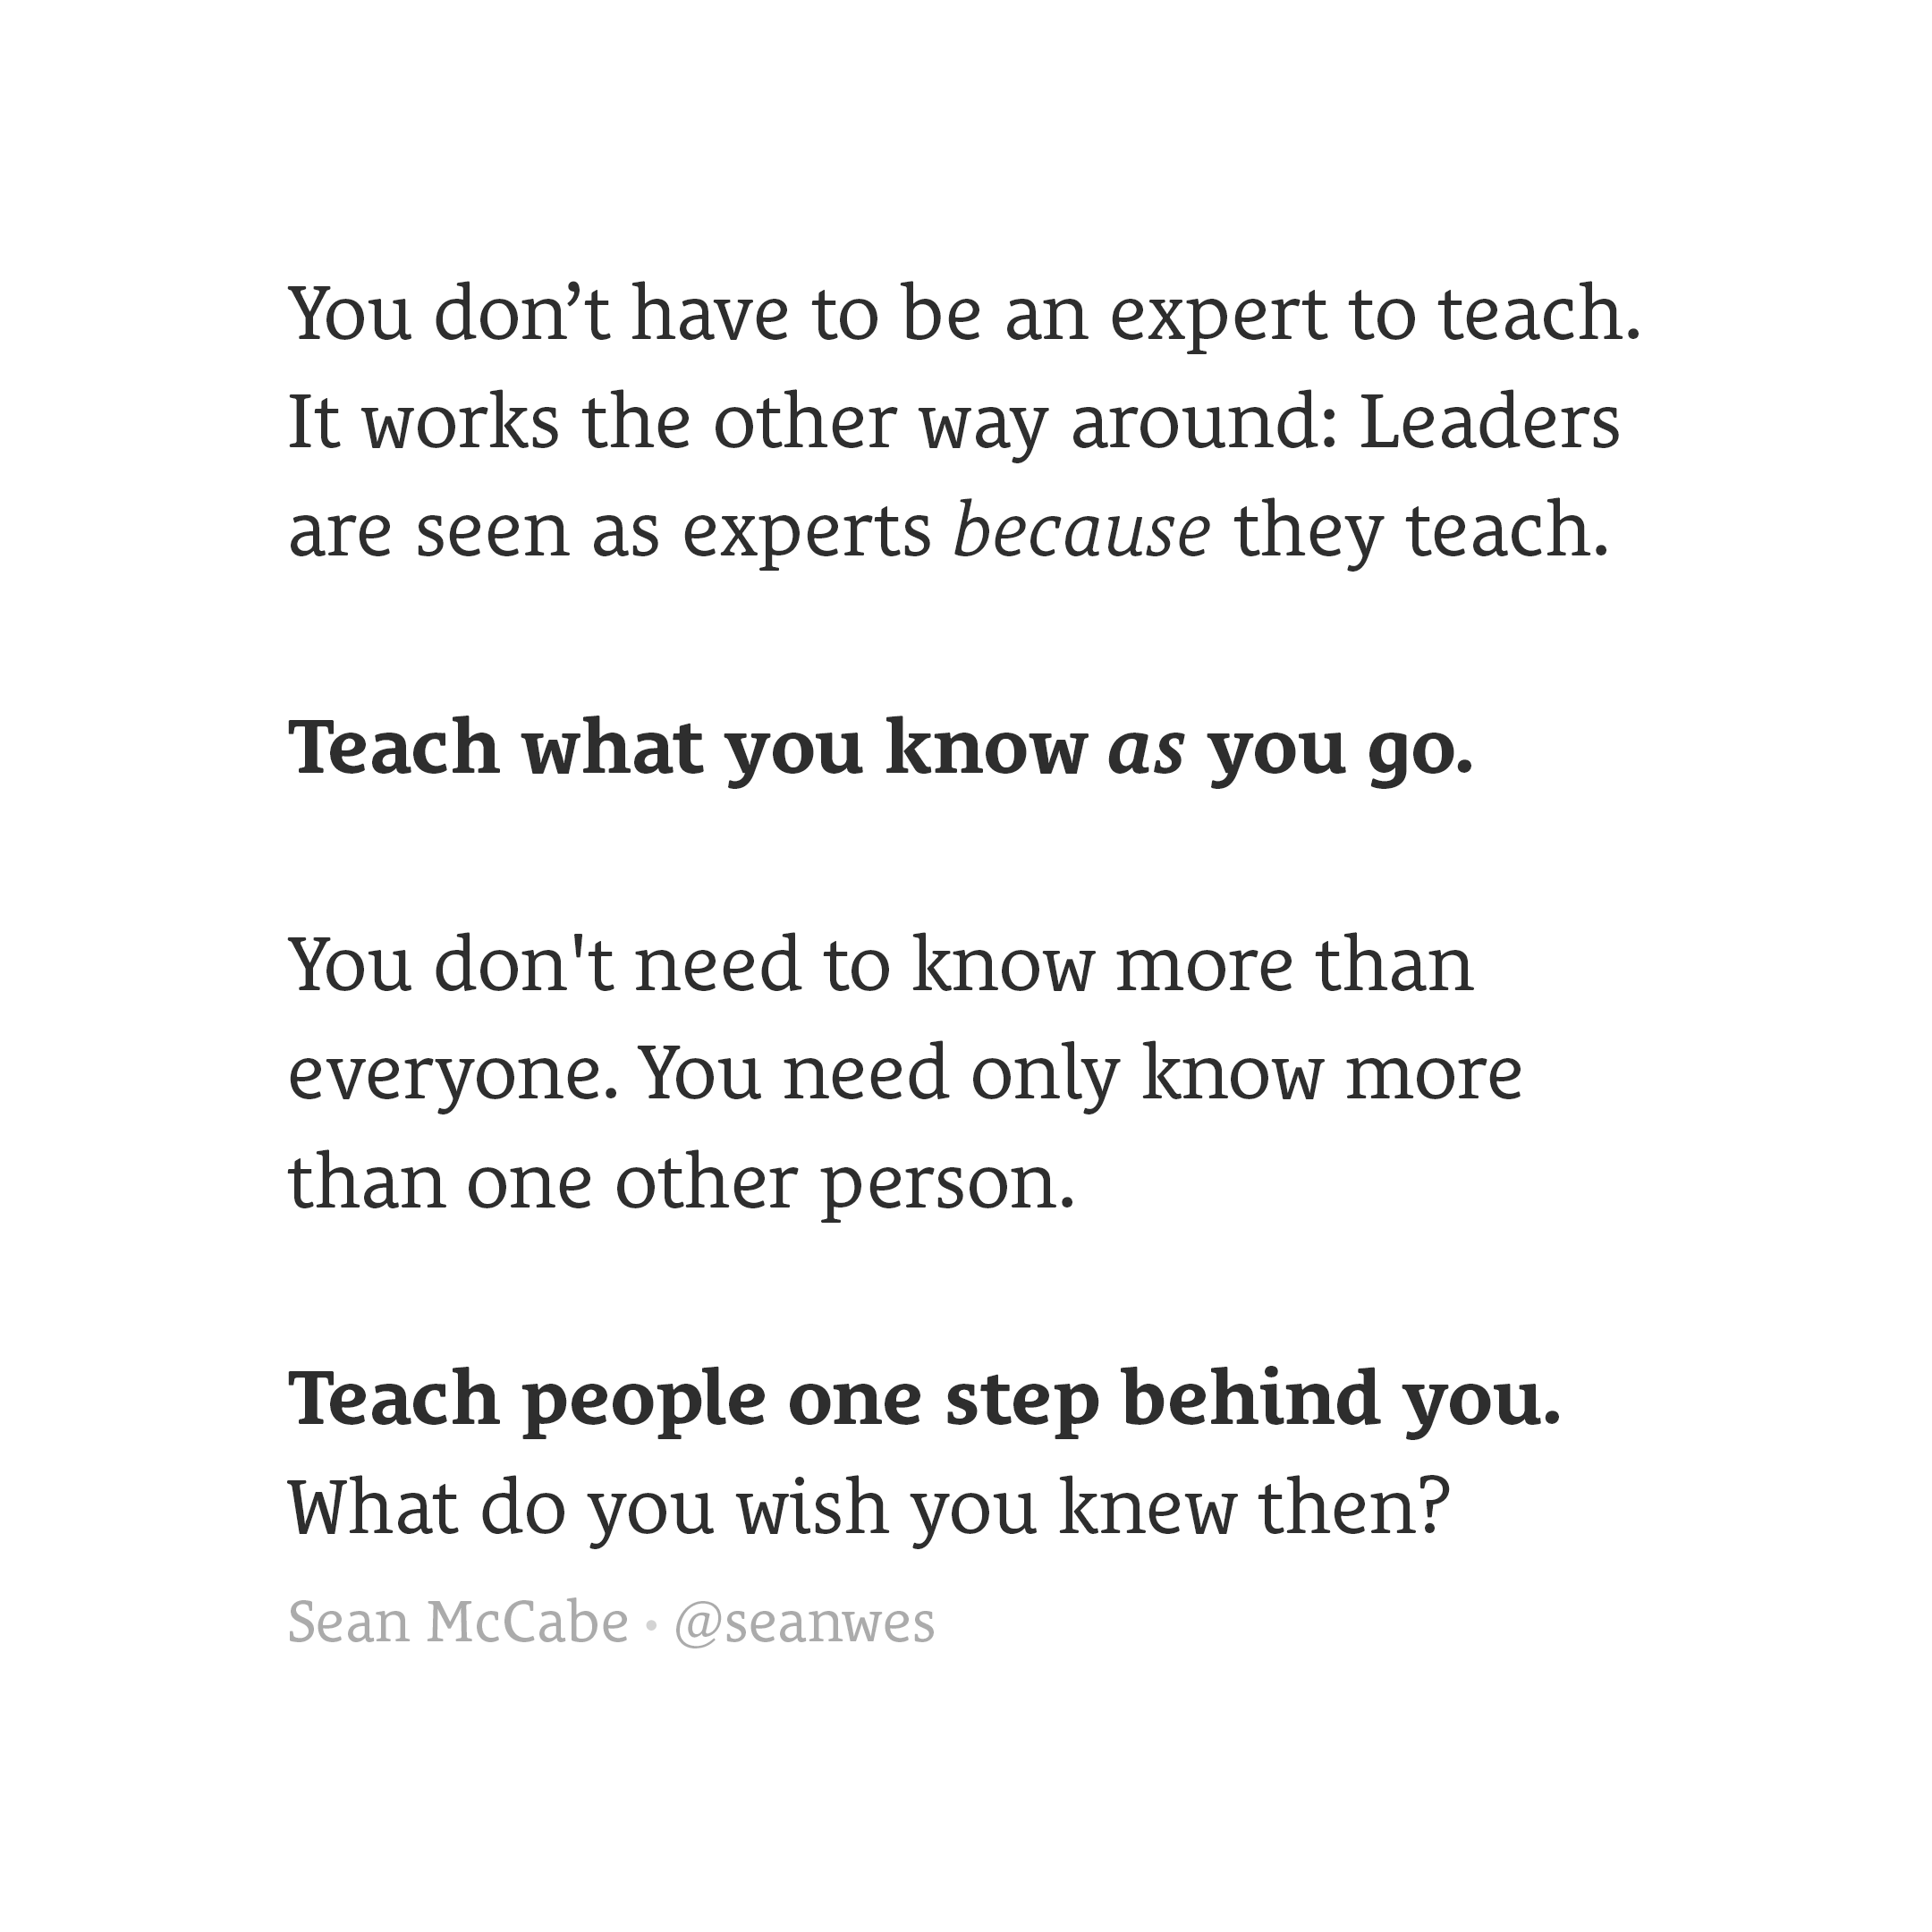 Teach what you know as you go.